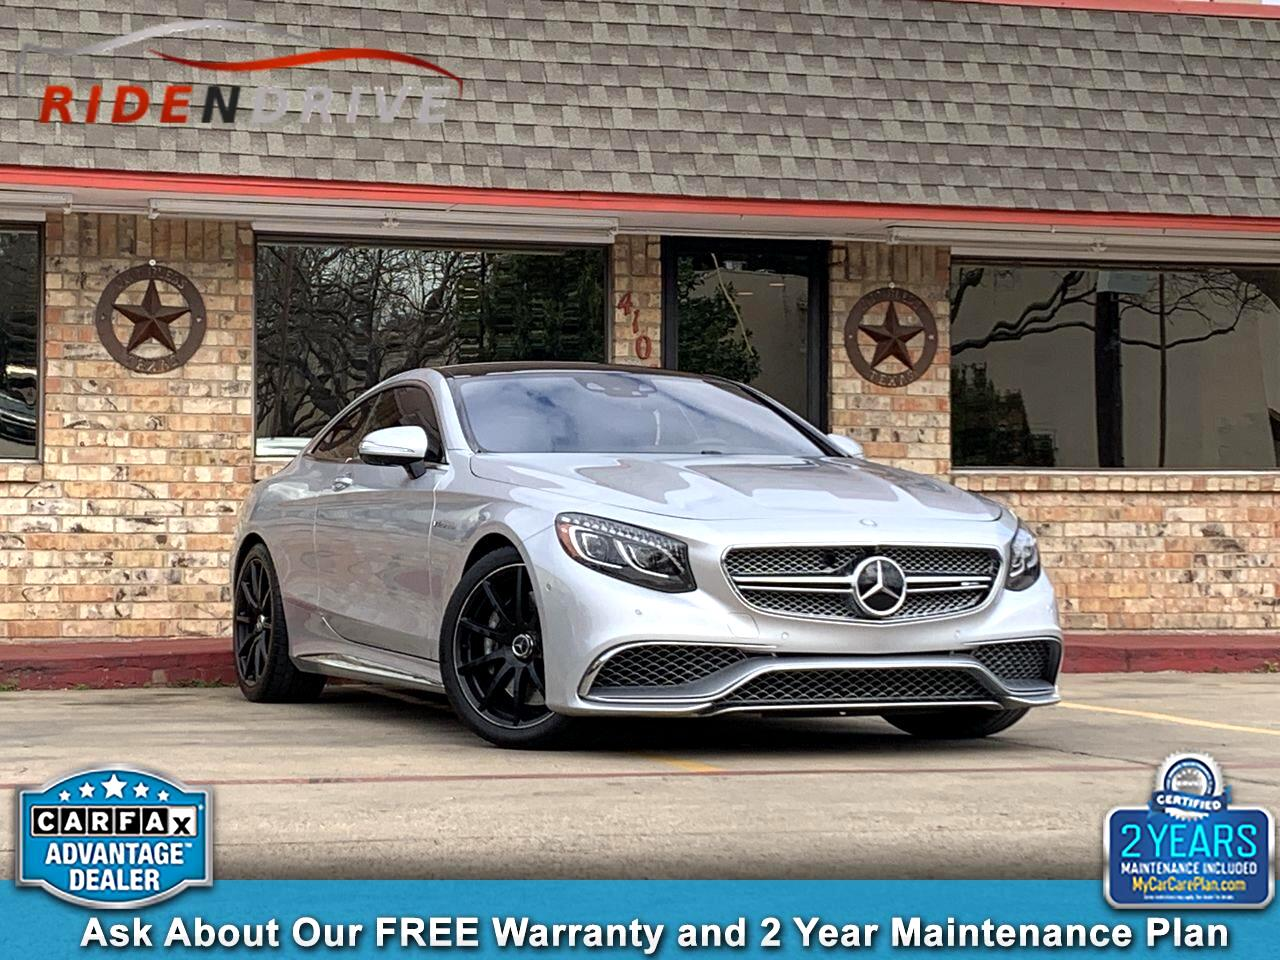 2015 Mercedes-Benz S-Class 2dr Cpe S 65 AMG RWD